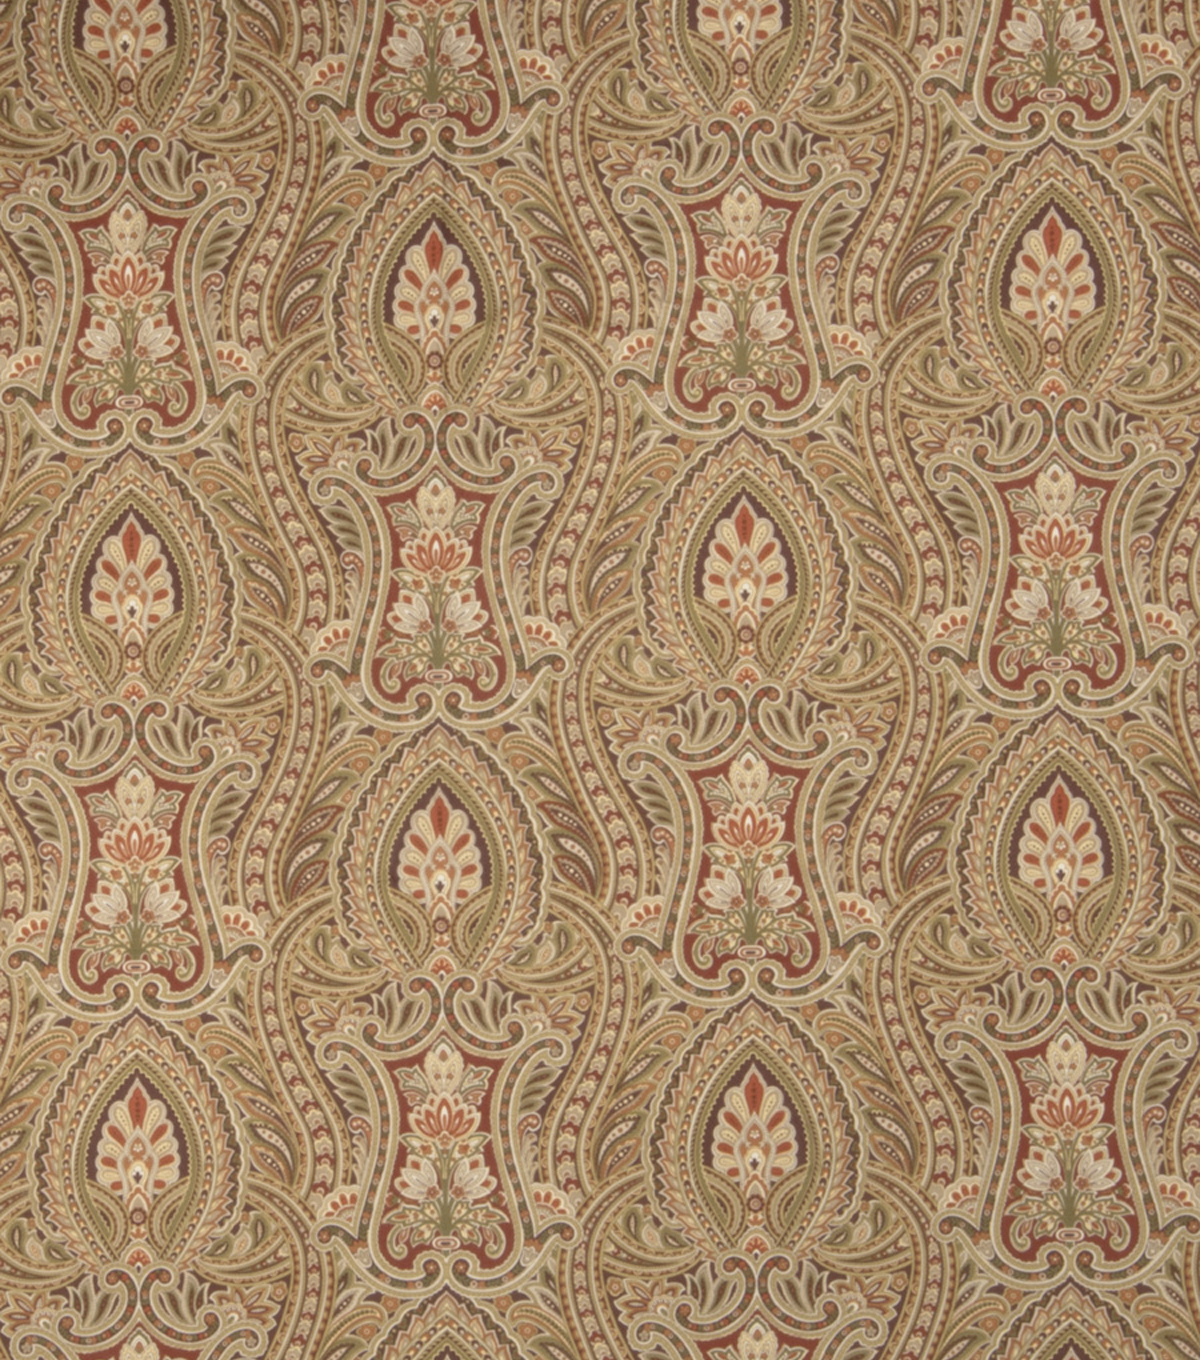 Home Decor 8\u0022x8\u0022 Fabric Swatch-Upholstery Fabric SMC Designs Cache Ginger